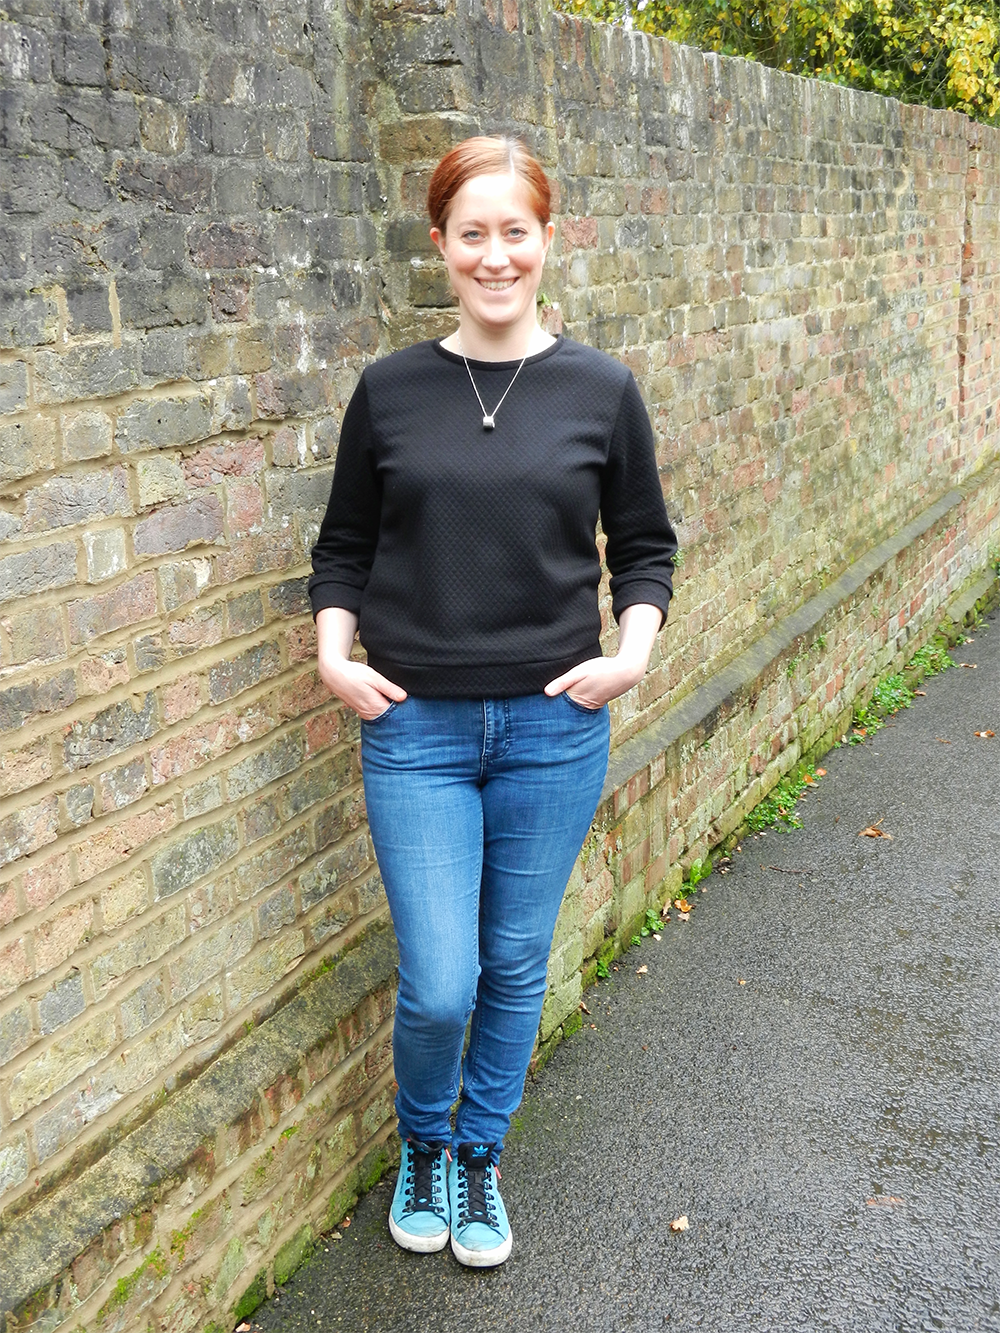 Sarah's Fraser Sweatshirt - Sewing Beautifully 2